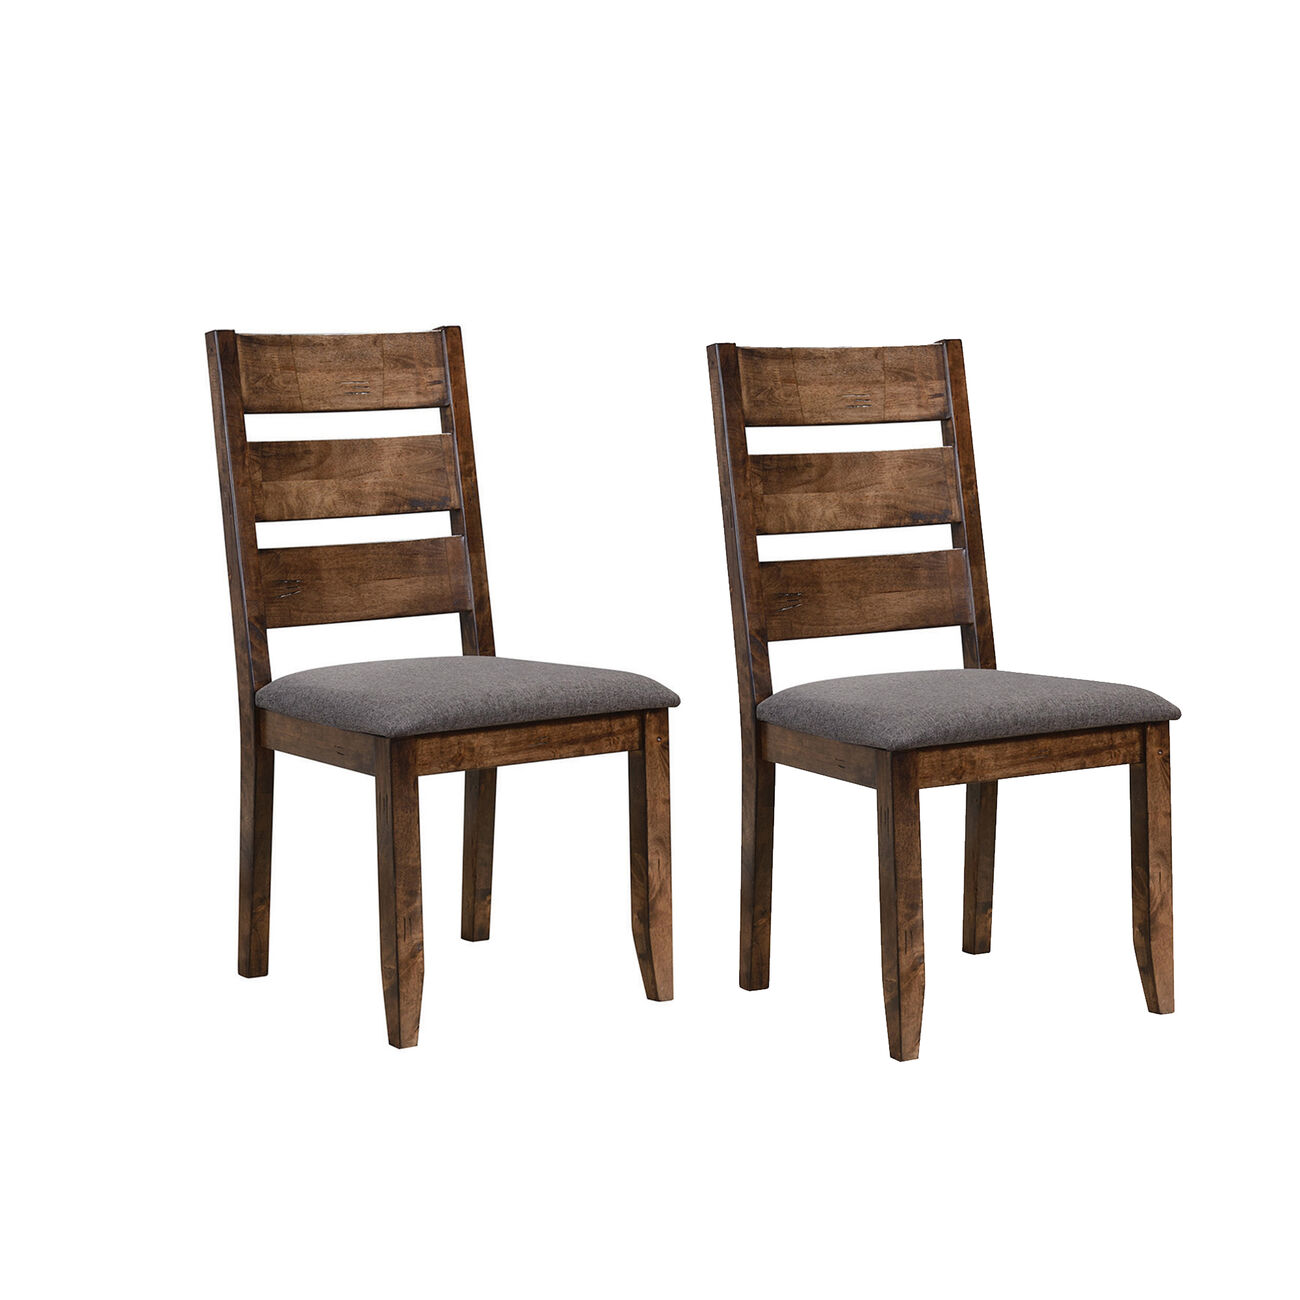 Wooden Ladder Back Dining Chair, Gray & Brown, Set of 2